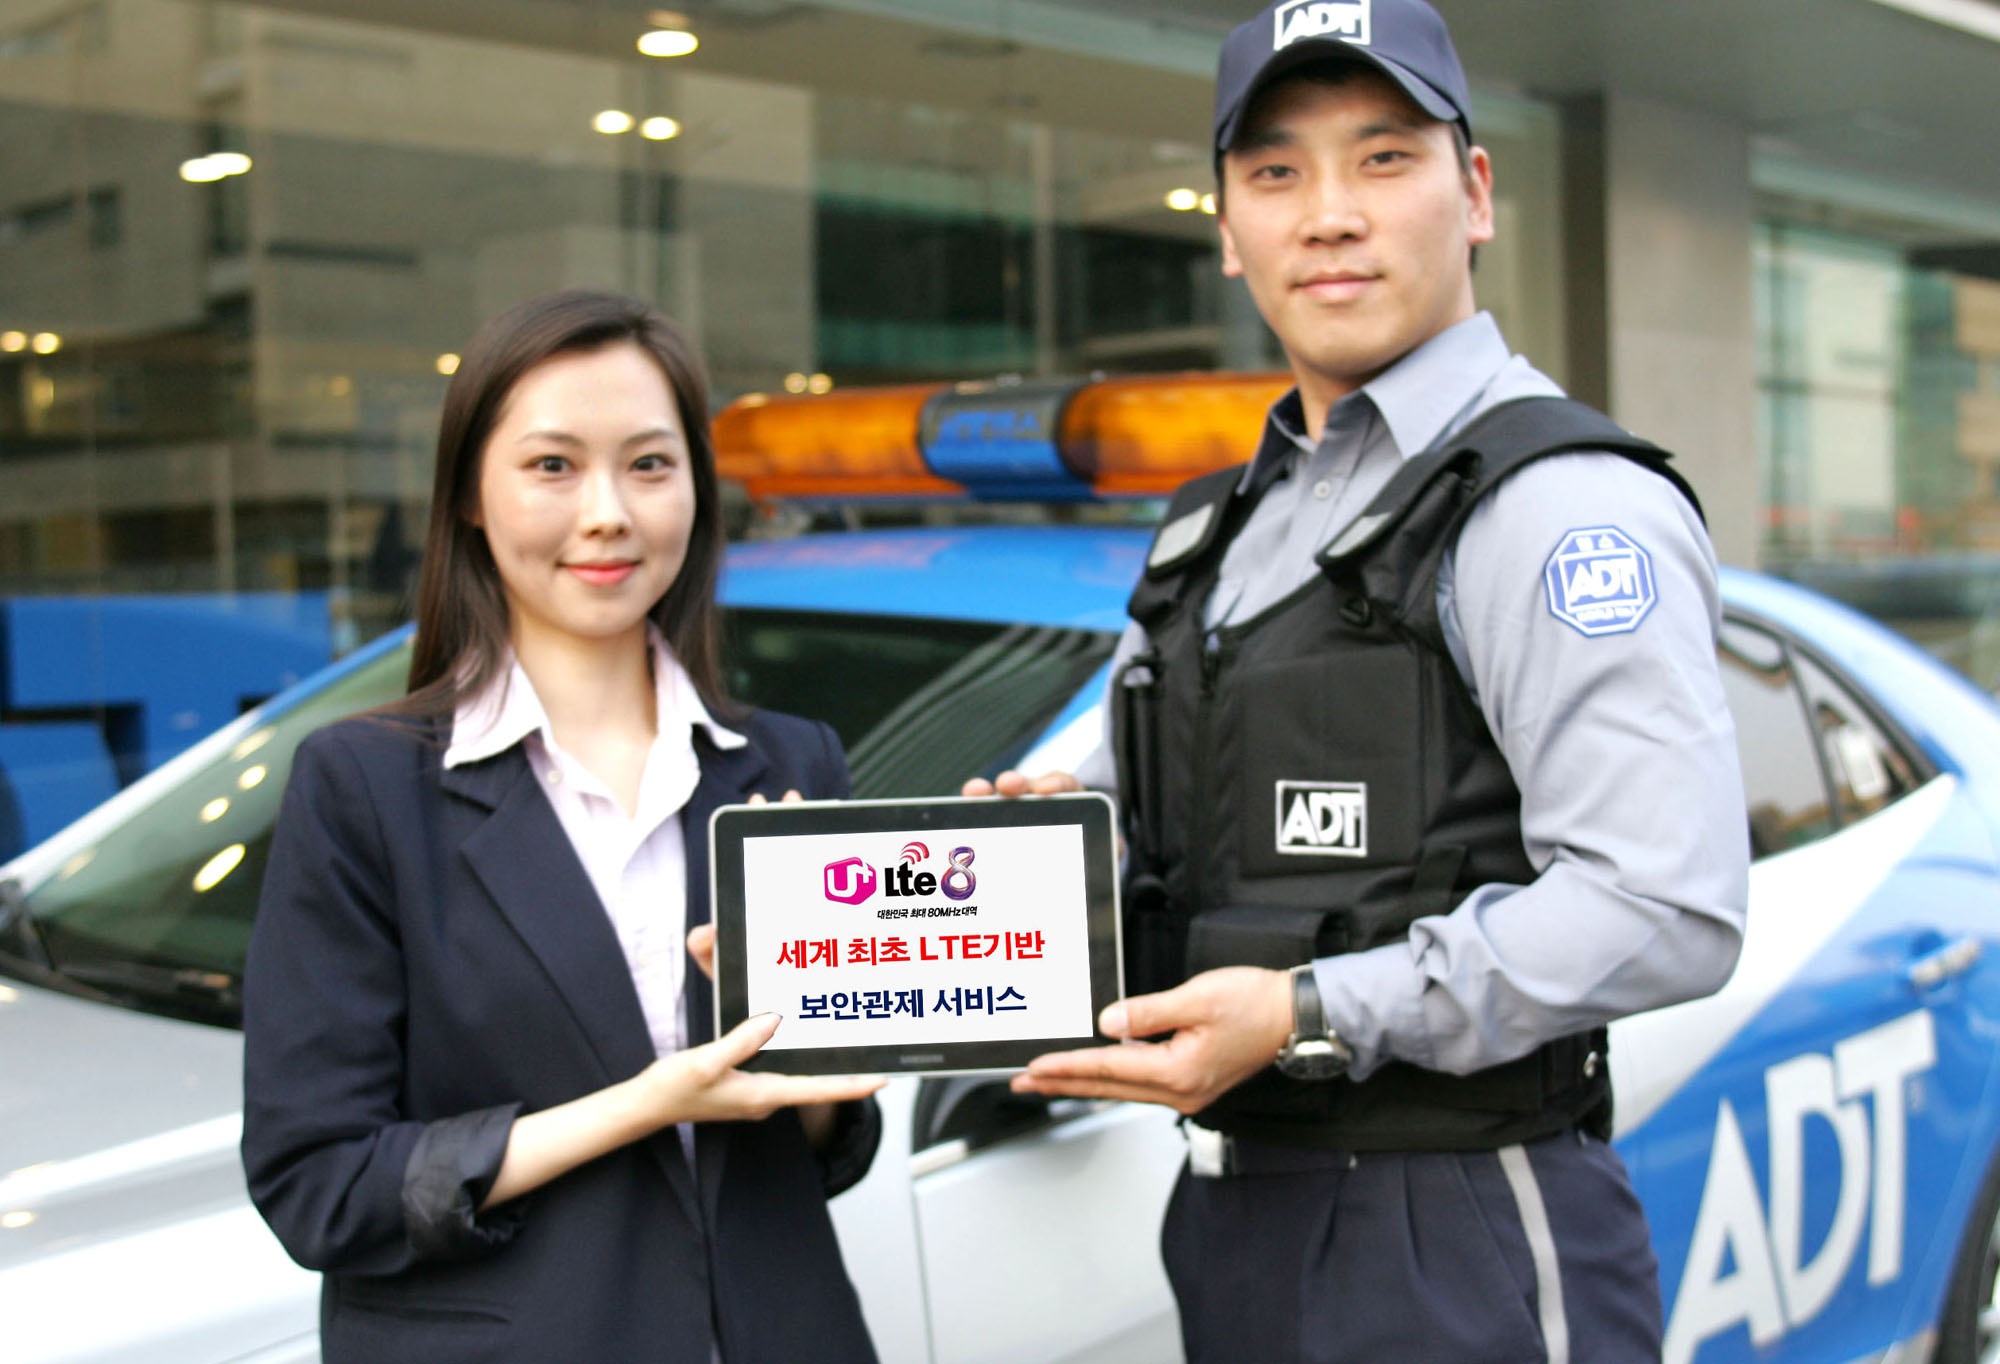 Through the partnership, the Korea's third largest mobile telecommunications carrier which fortified the world's first nationwide LTE network achieved recognition in its advanced LTE technology and in its stable network management. (image: LG U+)